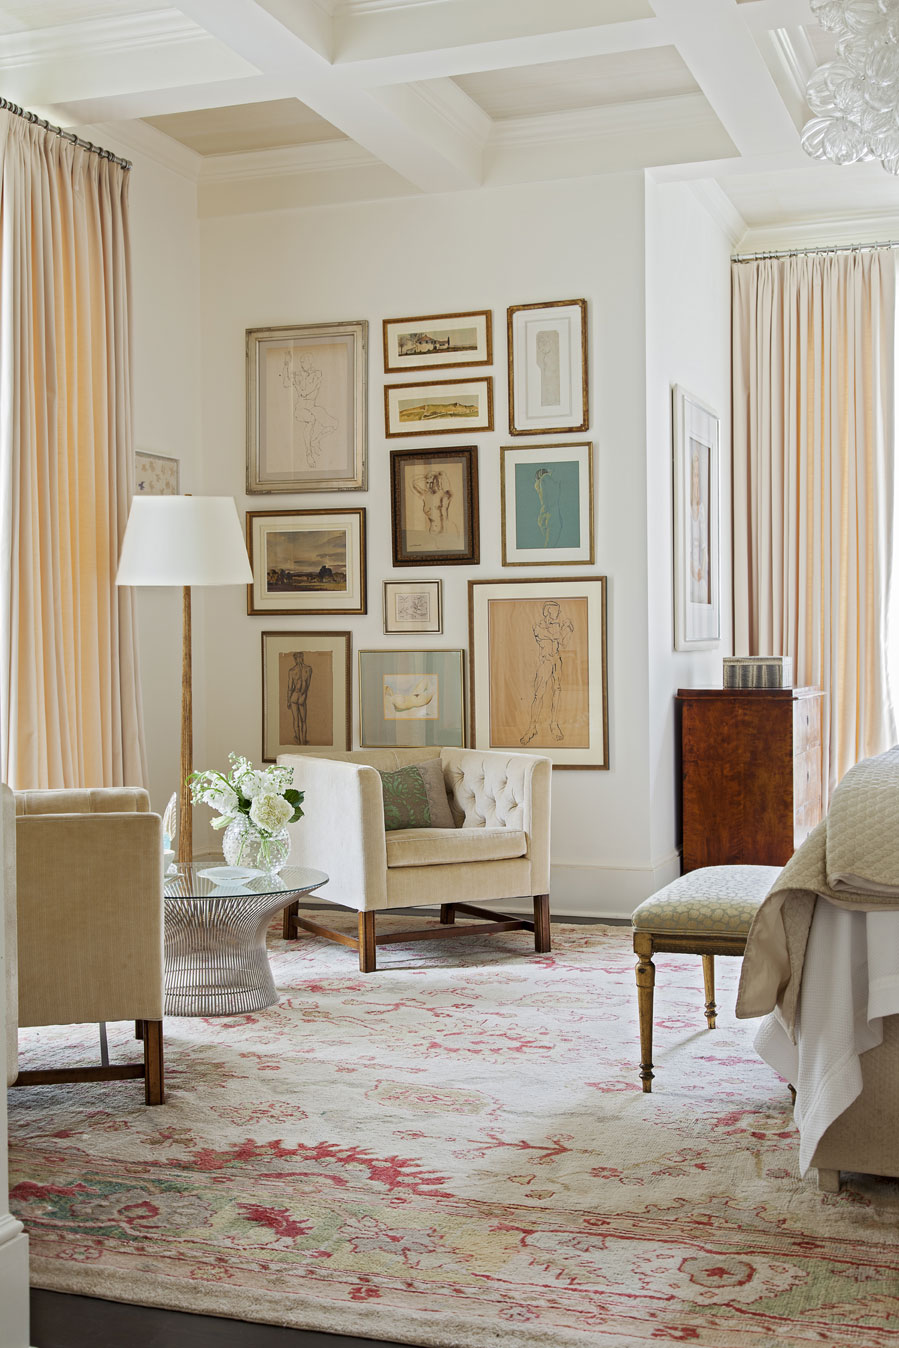 neutral territory: The graceful, first-floor master bedroom is both elegant and modern with ivory drapery and an array of artwork.